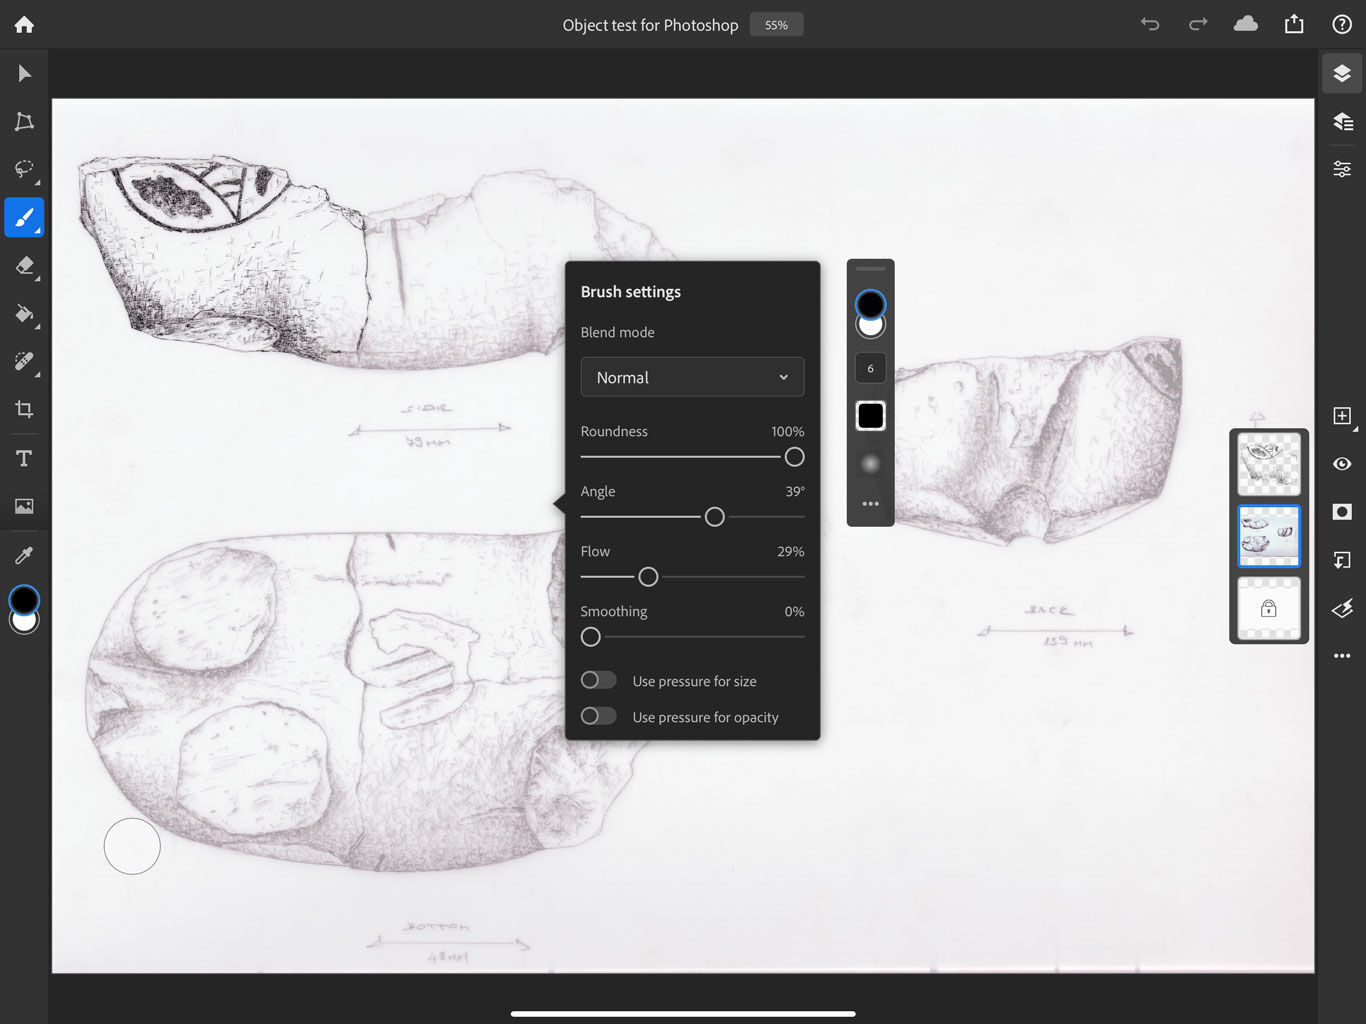 Photoshop for the iPad - brush settings